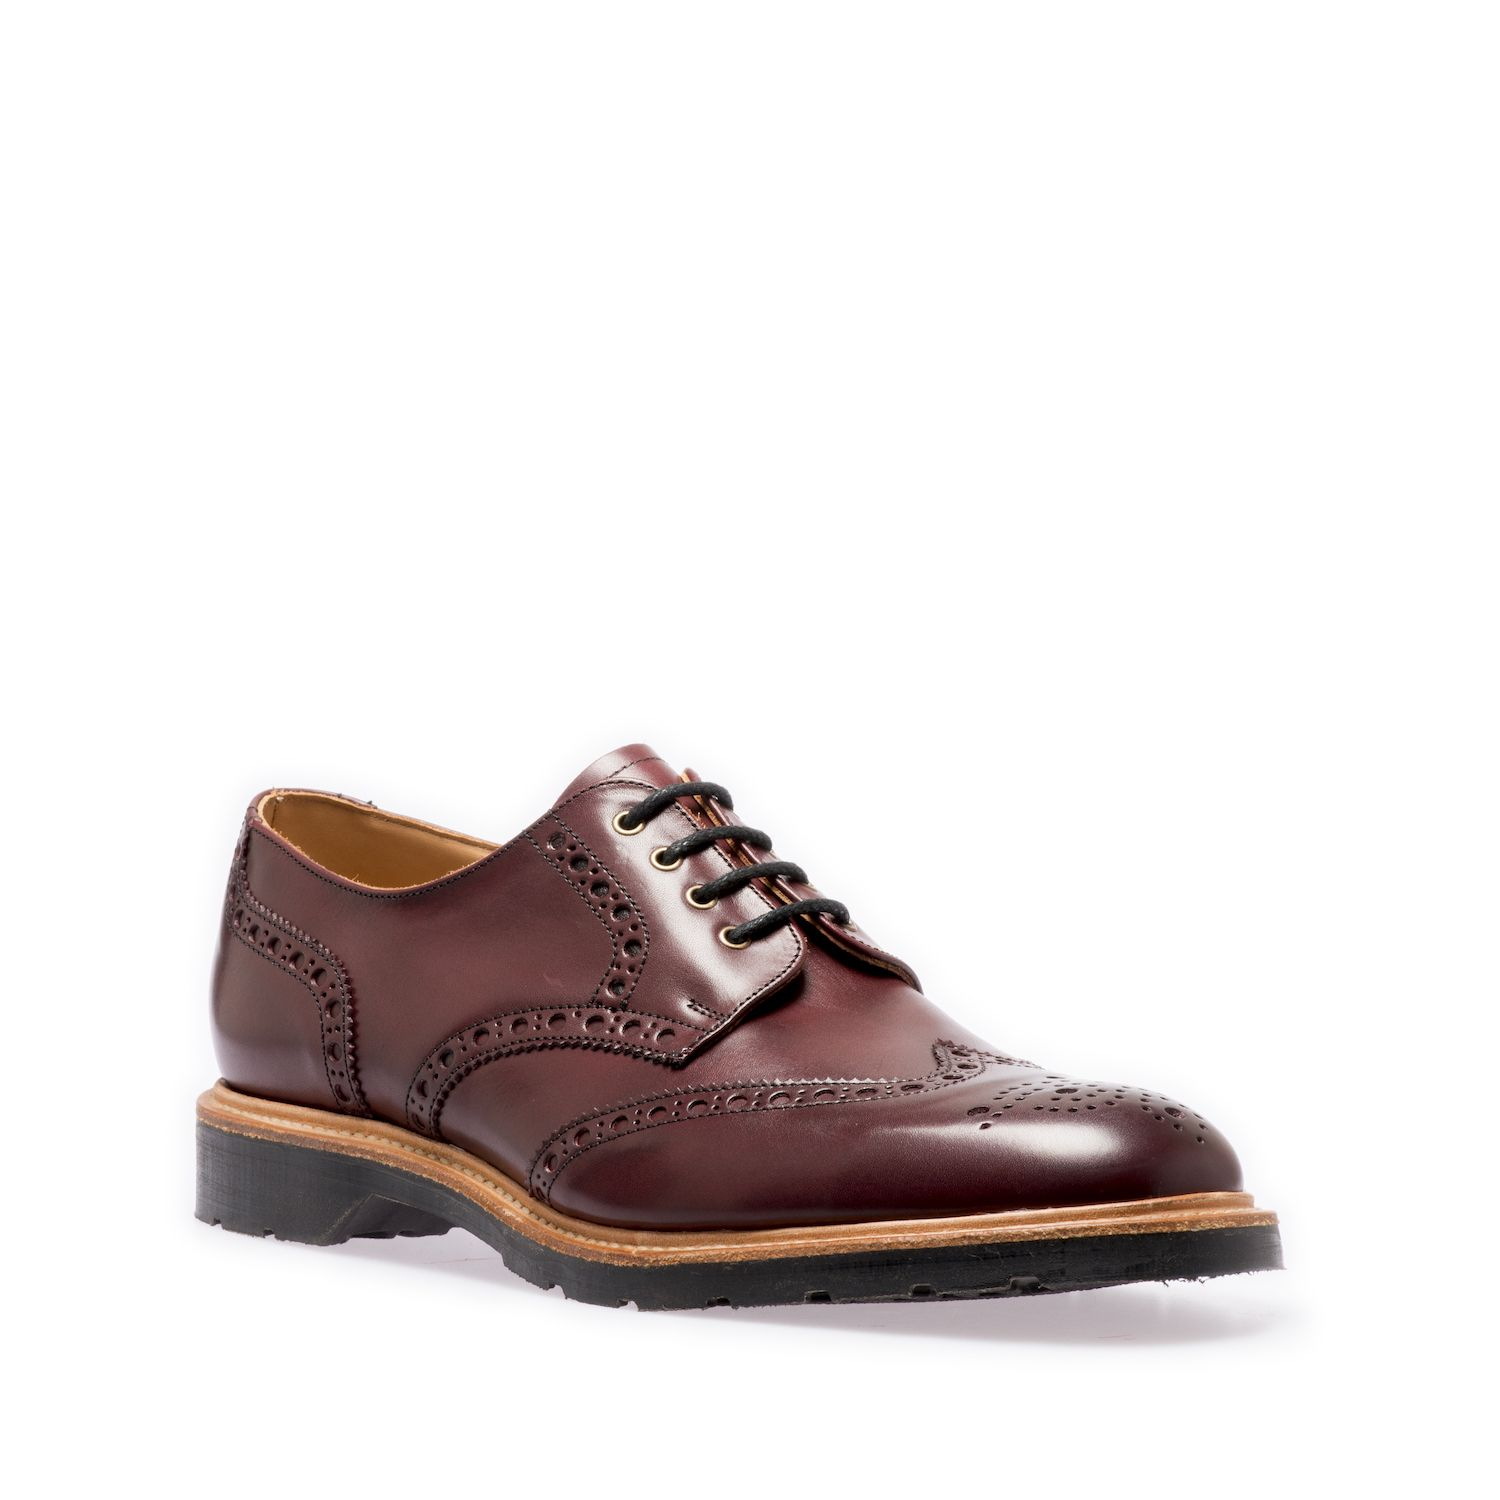 Solovair Gibson Brogue Shoe In Burgundy